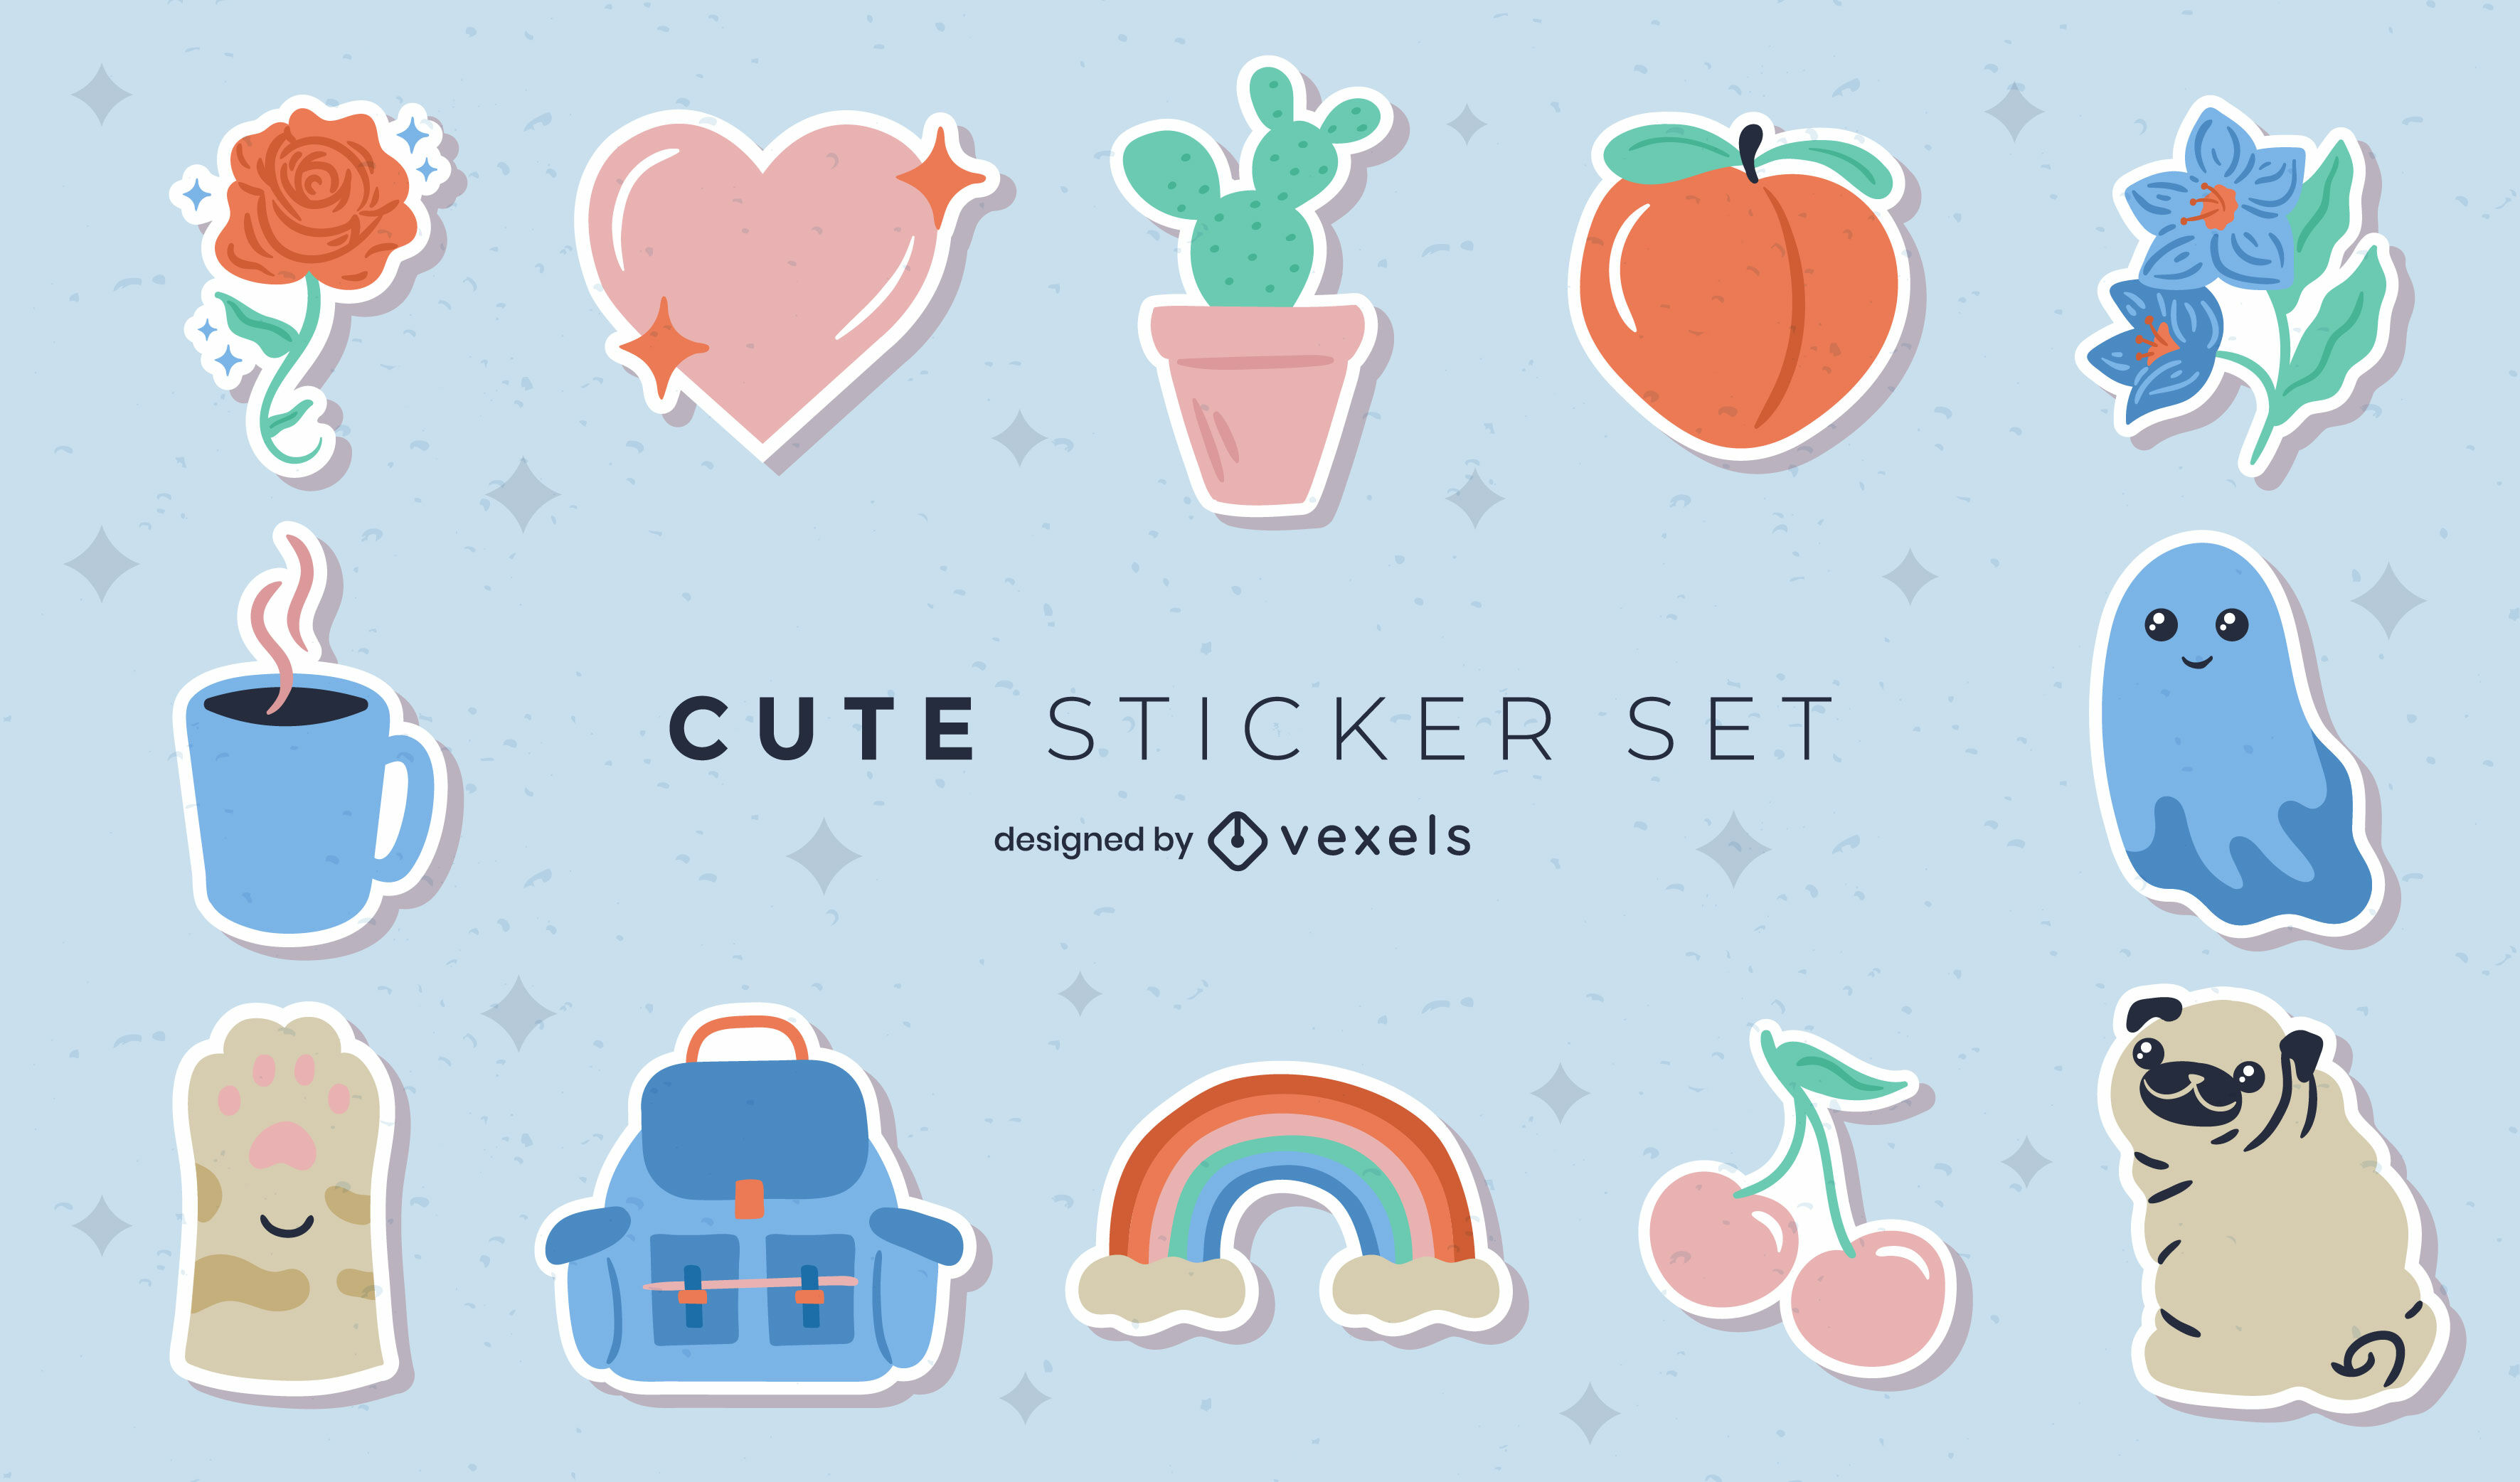 Lovely stickers set